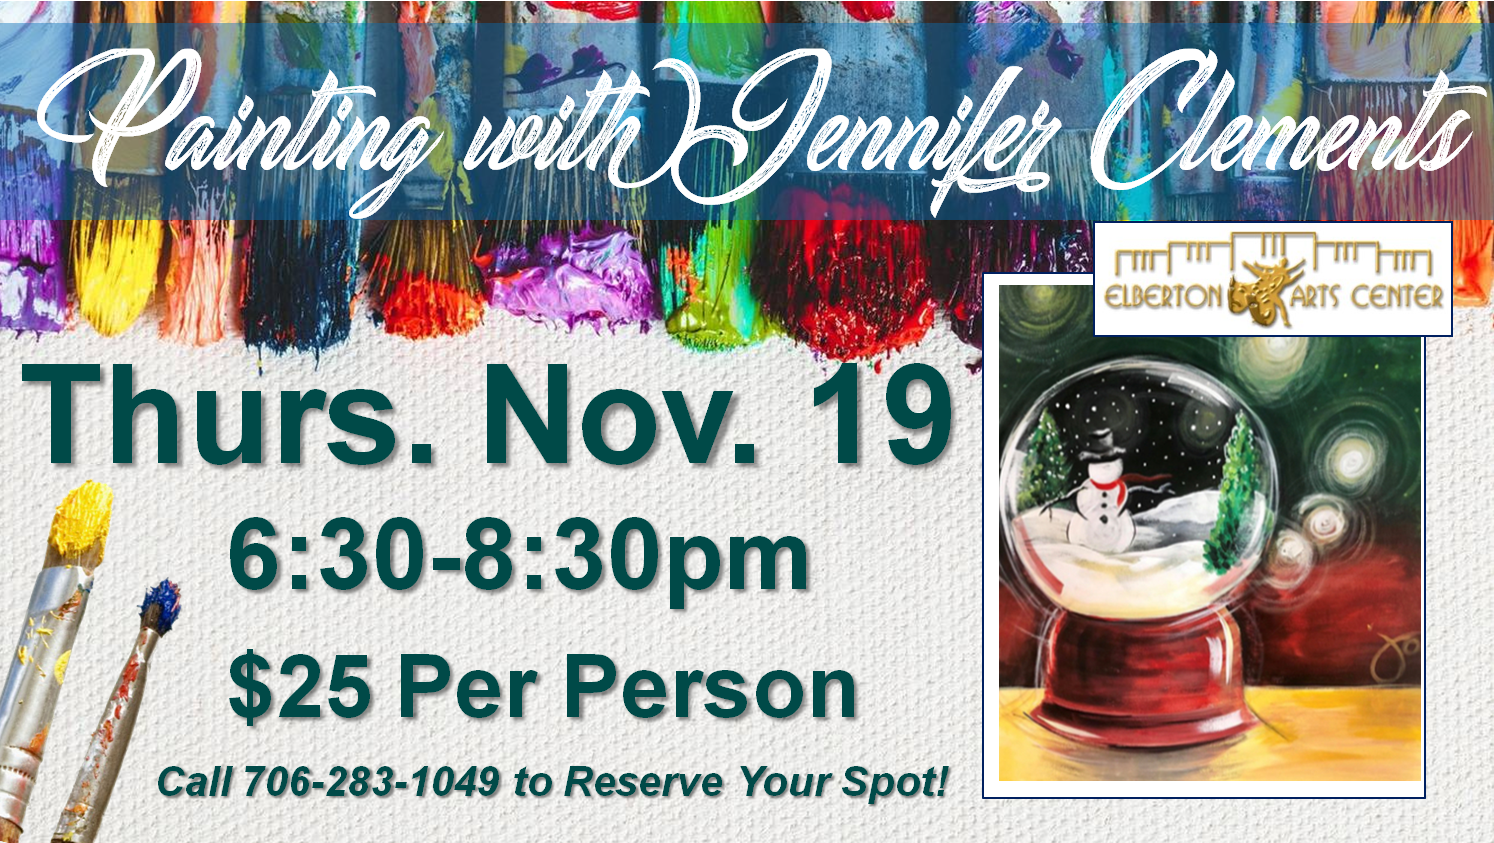 Painting with Jennifer Thurs Nov 19